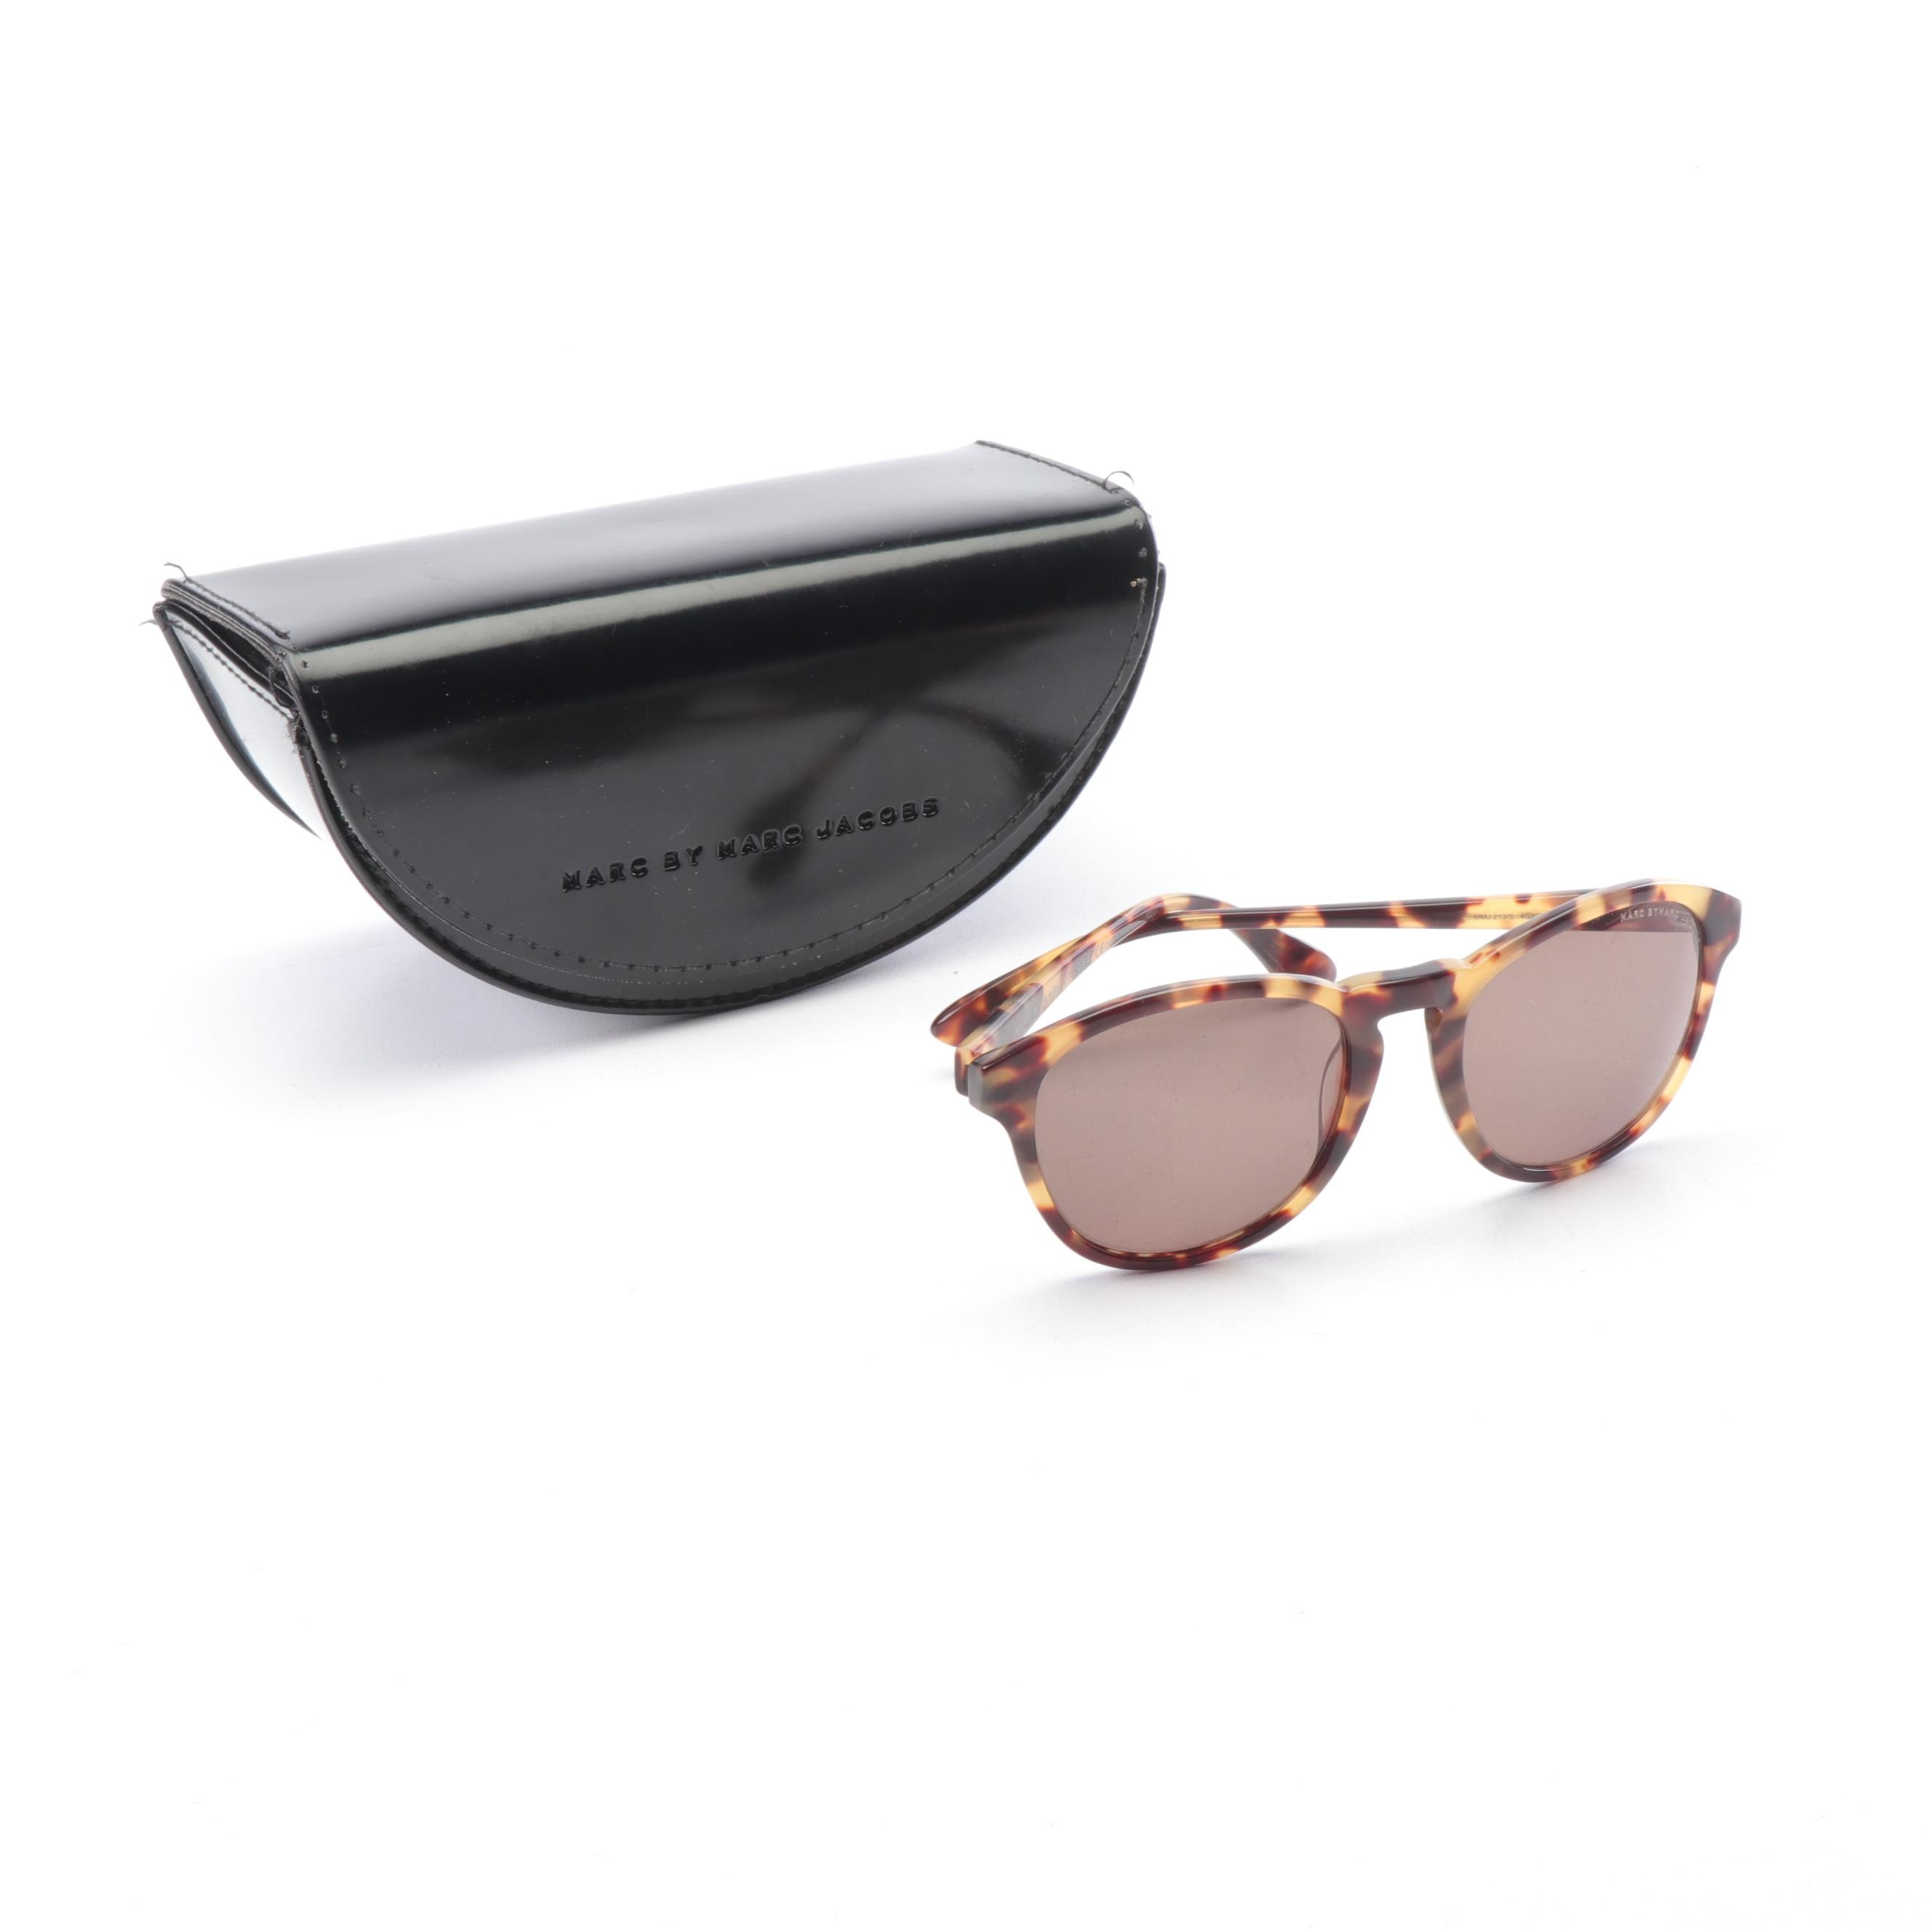 Marc by Marc Jacobs 213/S Tortoiseshell Style Sunglasses with Case